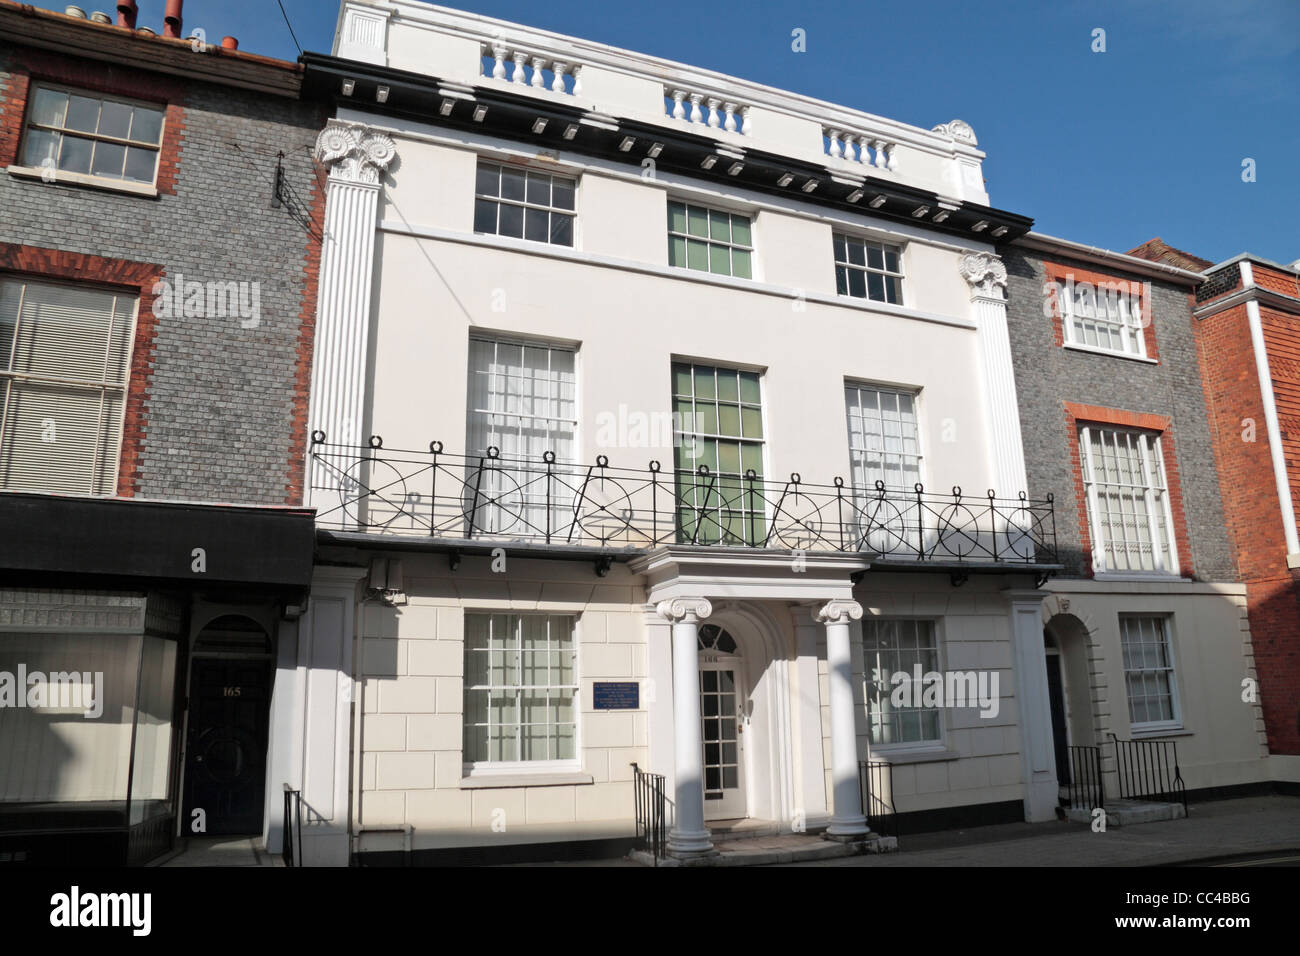 The former home of Dr Gideon A Mantell, a surgeon and geologist in Lewes, East Sussex, UK. (see notes) - Stock Image